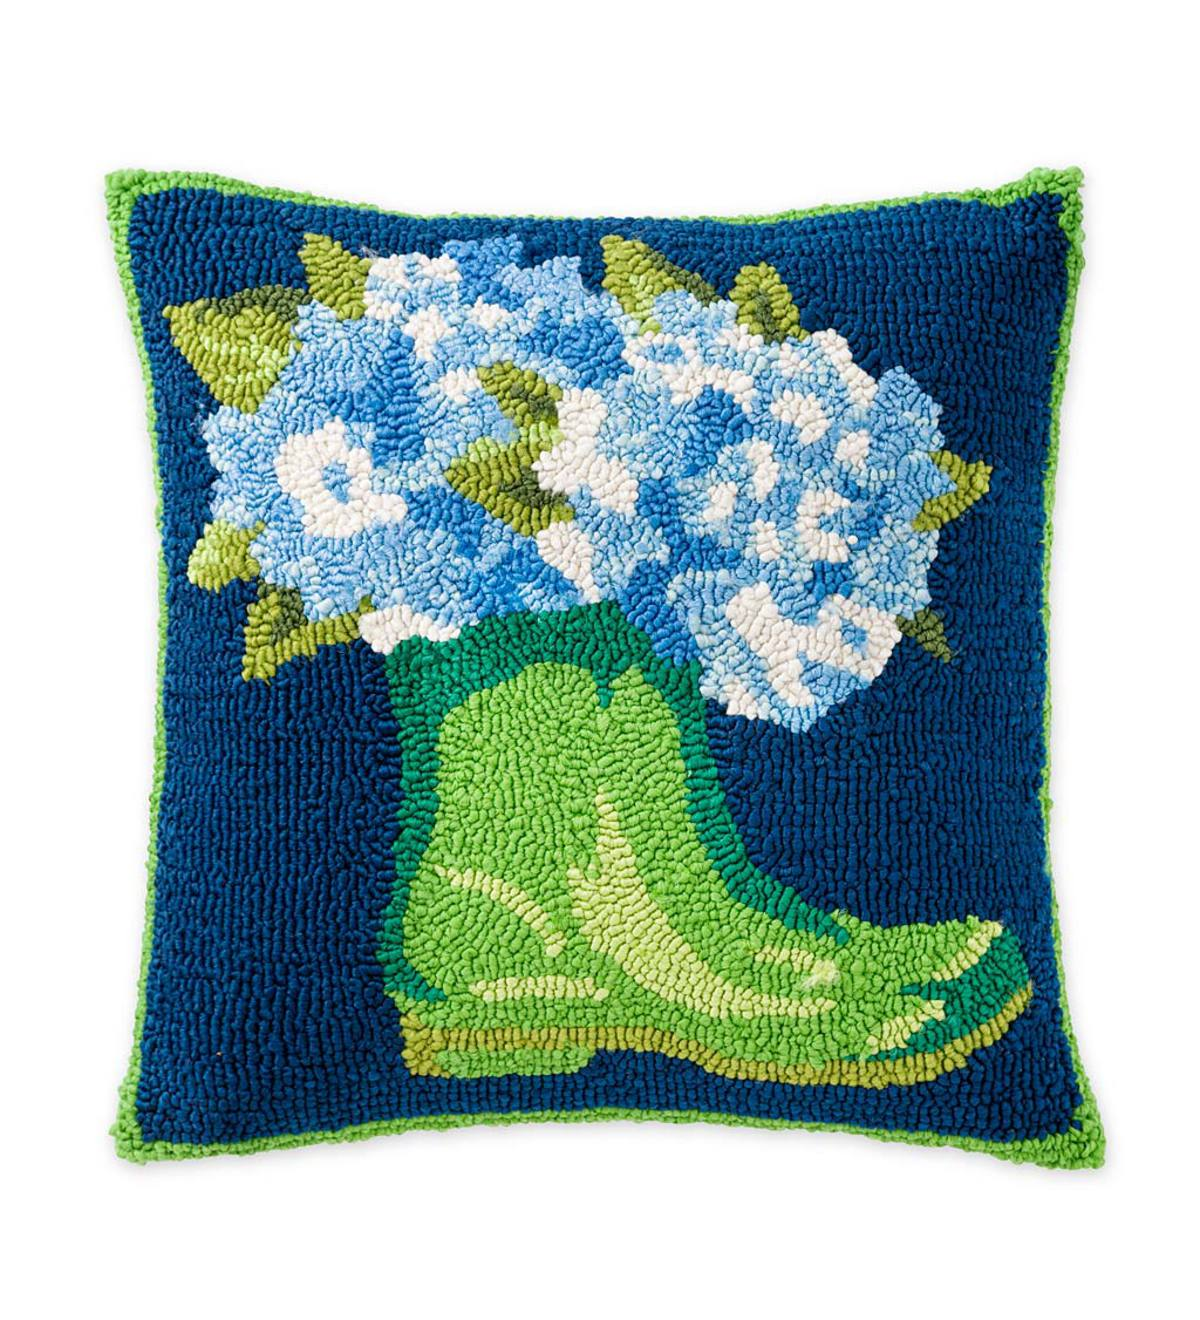 Indoor/Outdoor Hooked Garden Boots and Hydrangeas Throw Pillow